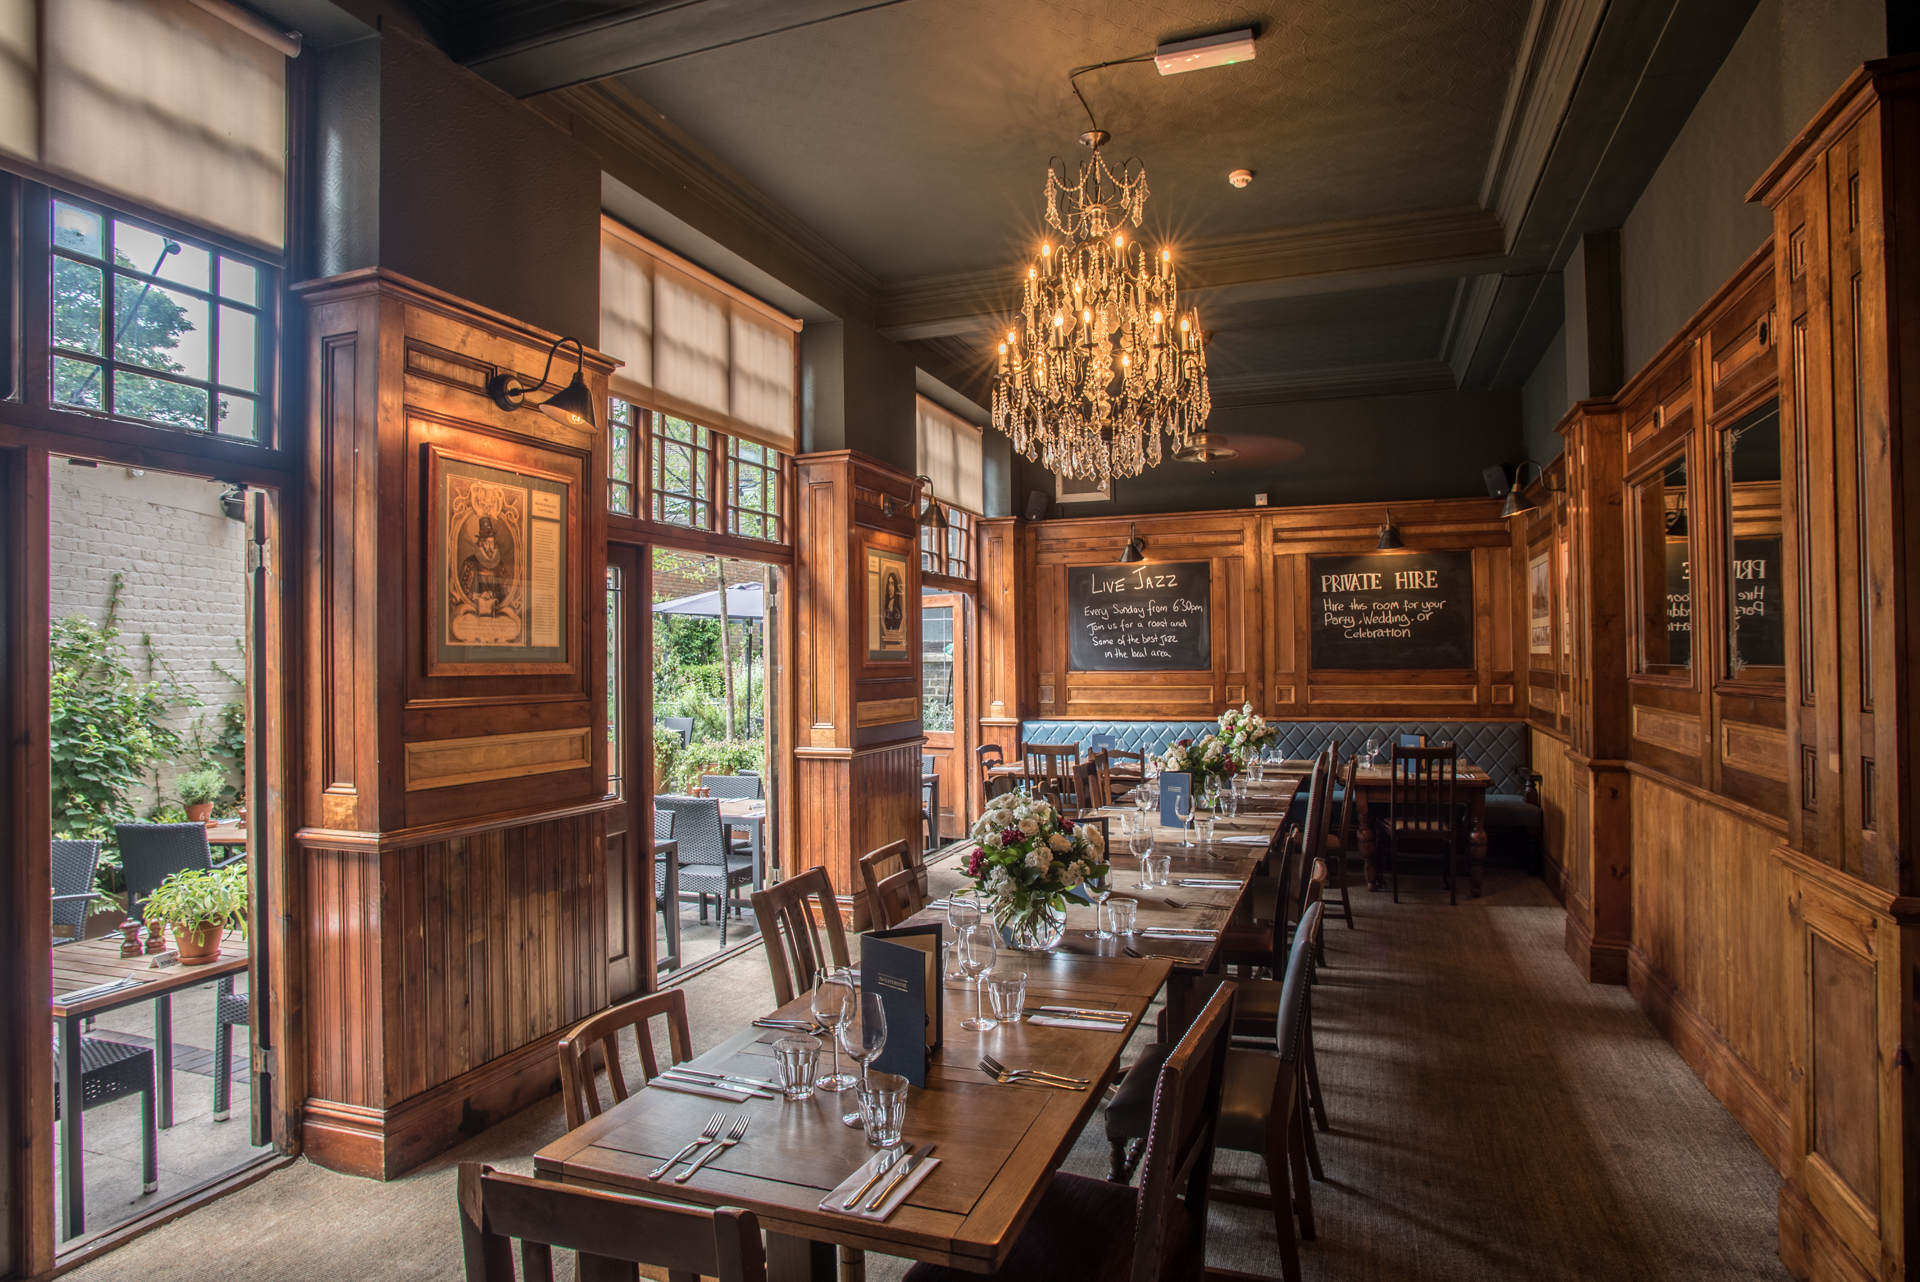 Private Hire_Dining Room-2.jpg